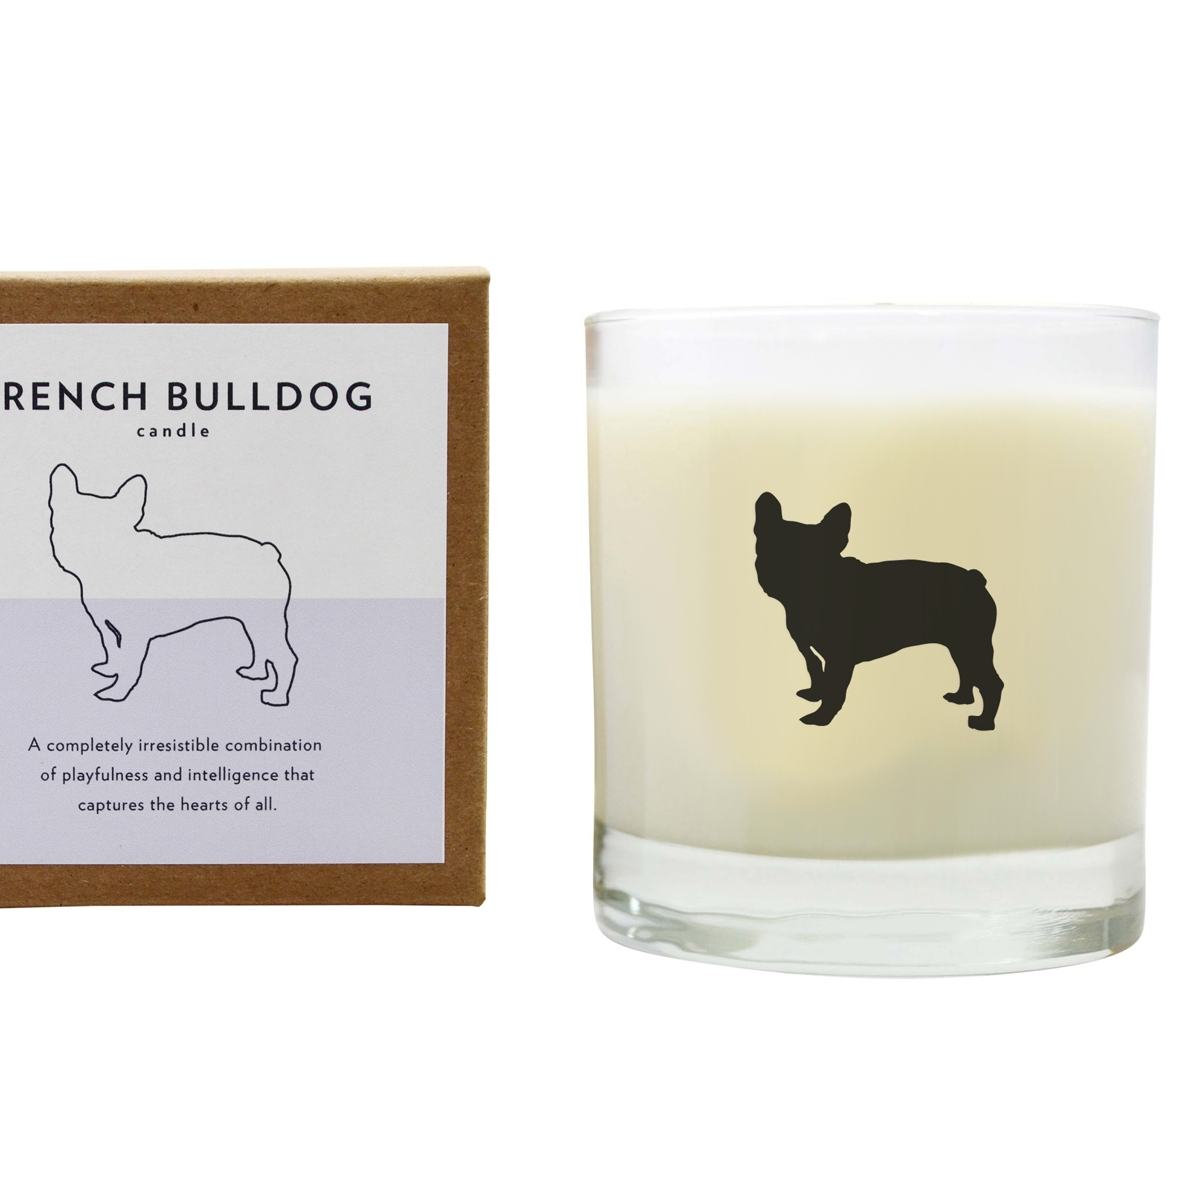 Scripted Fragrance   Candles celebrating the people, places, and things that matter to us most.